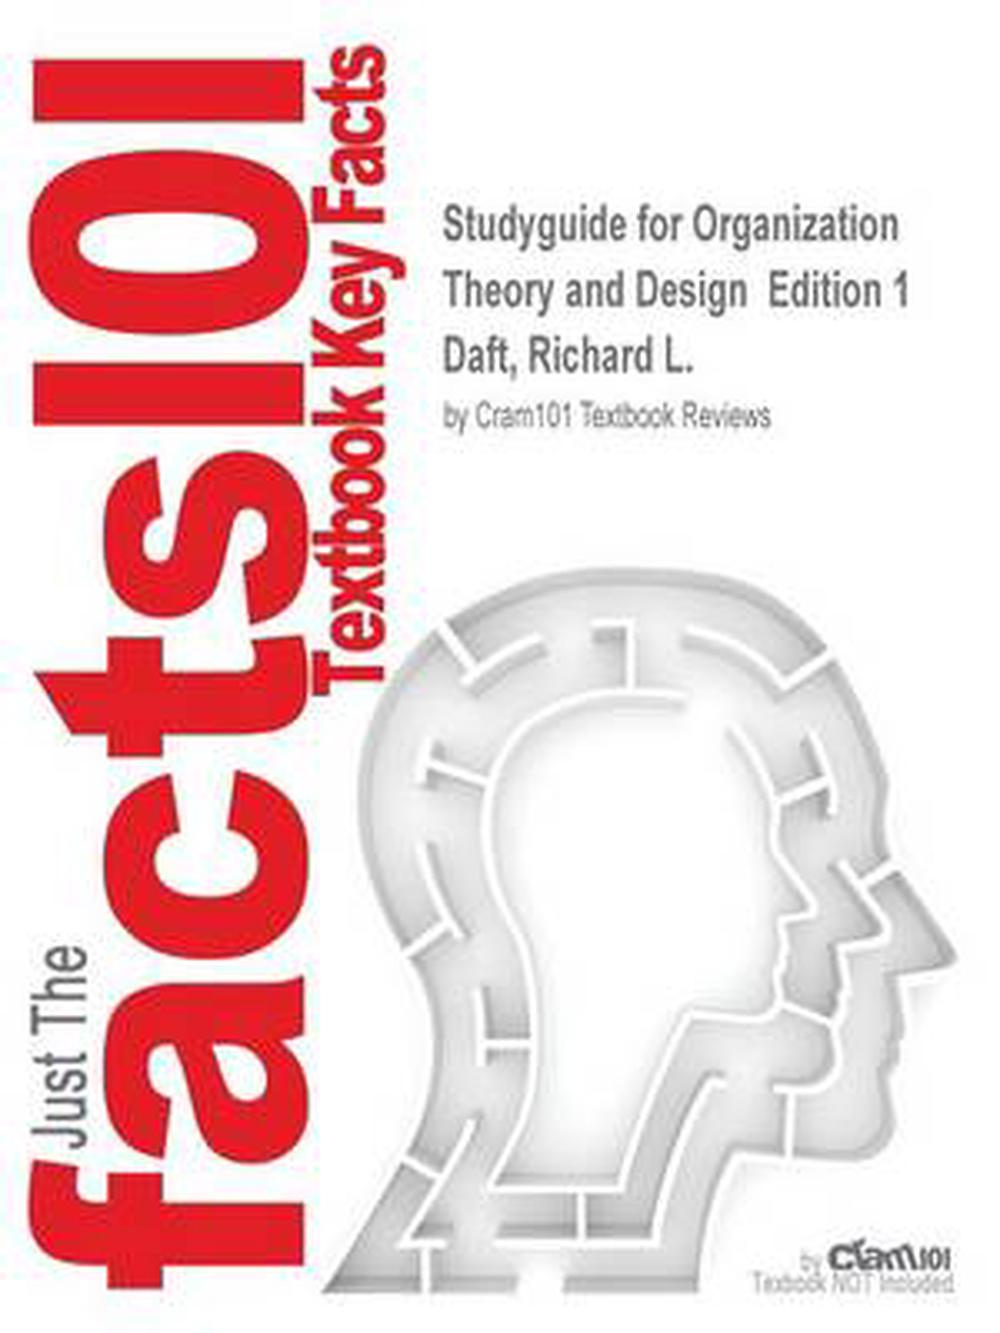 Studyguide For Organization Theory And Design Edition 1 By Daft Richard L Isb 9781538801321 Ebay